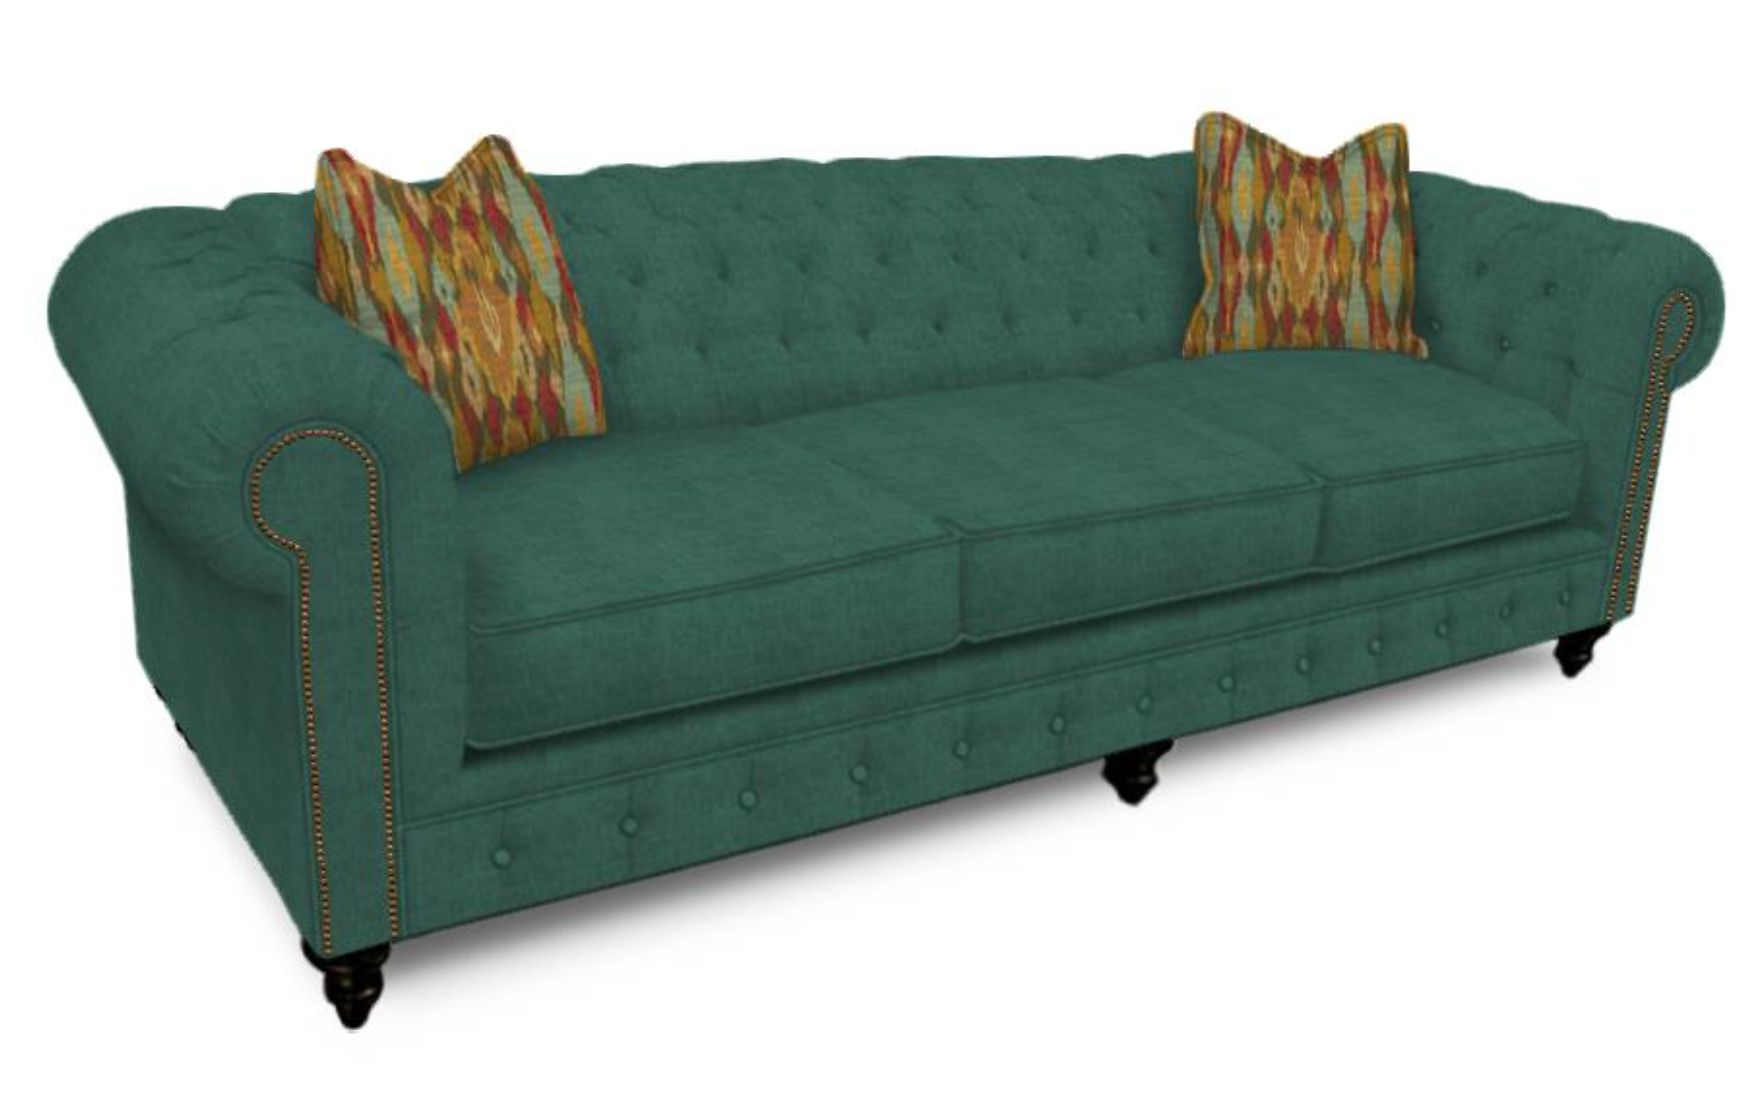 Design your own living room furniture furniture world for Design your own living room furniture